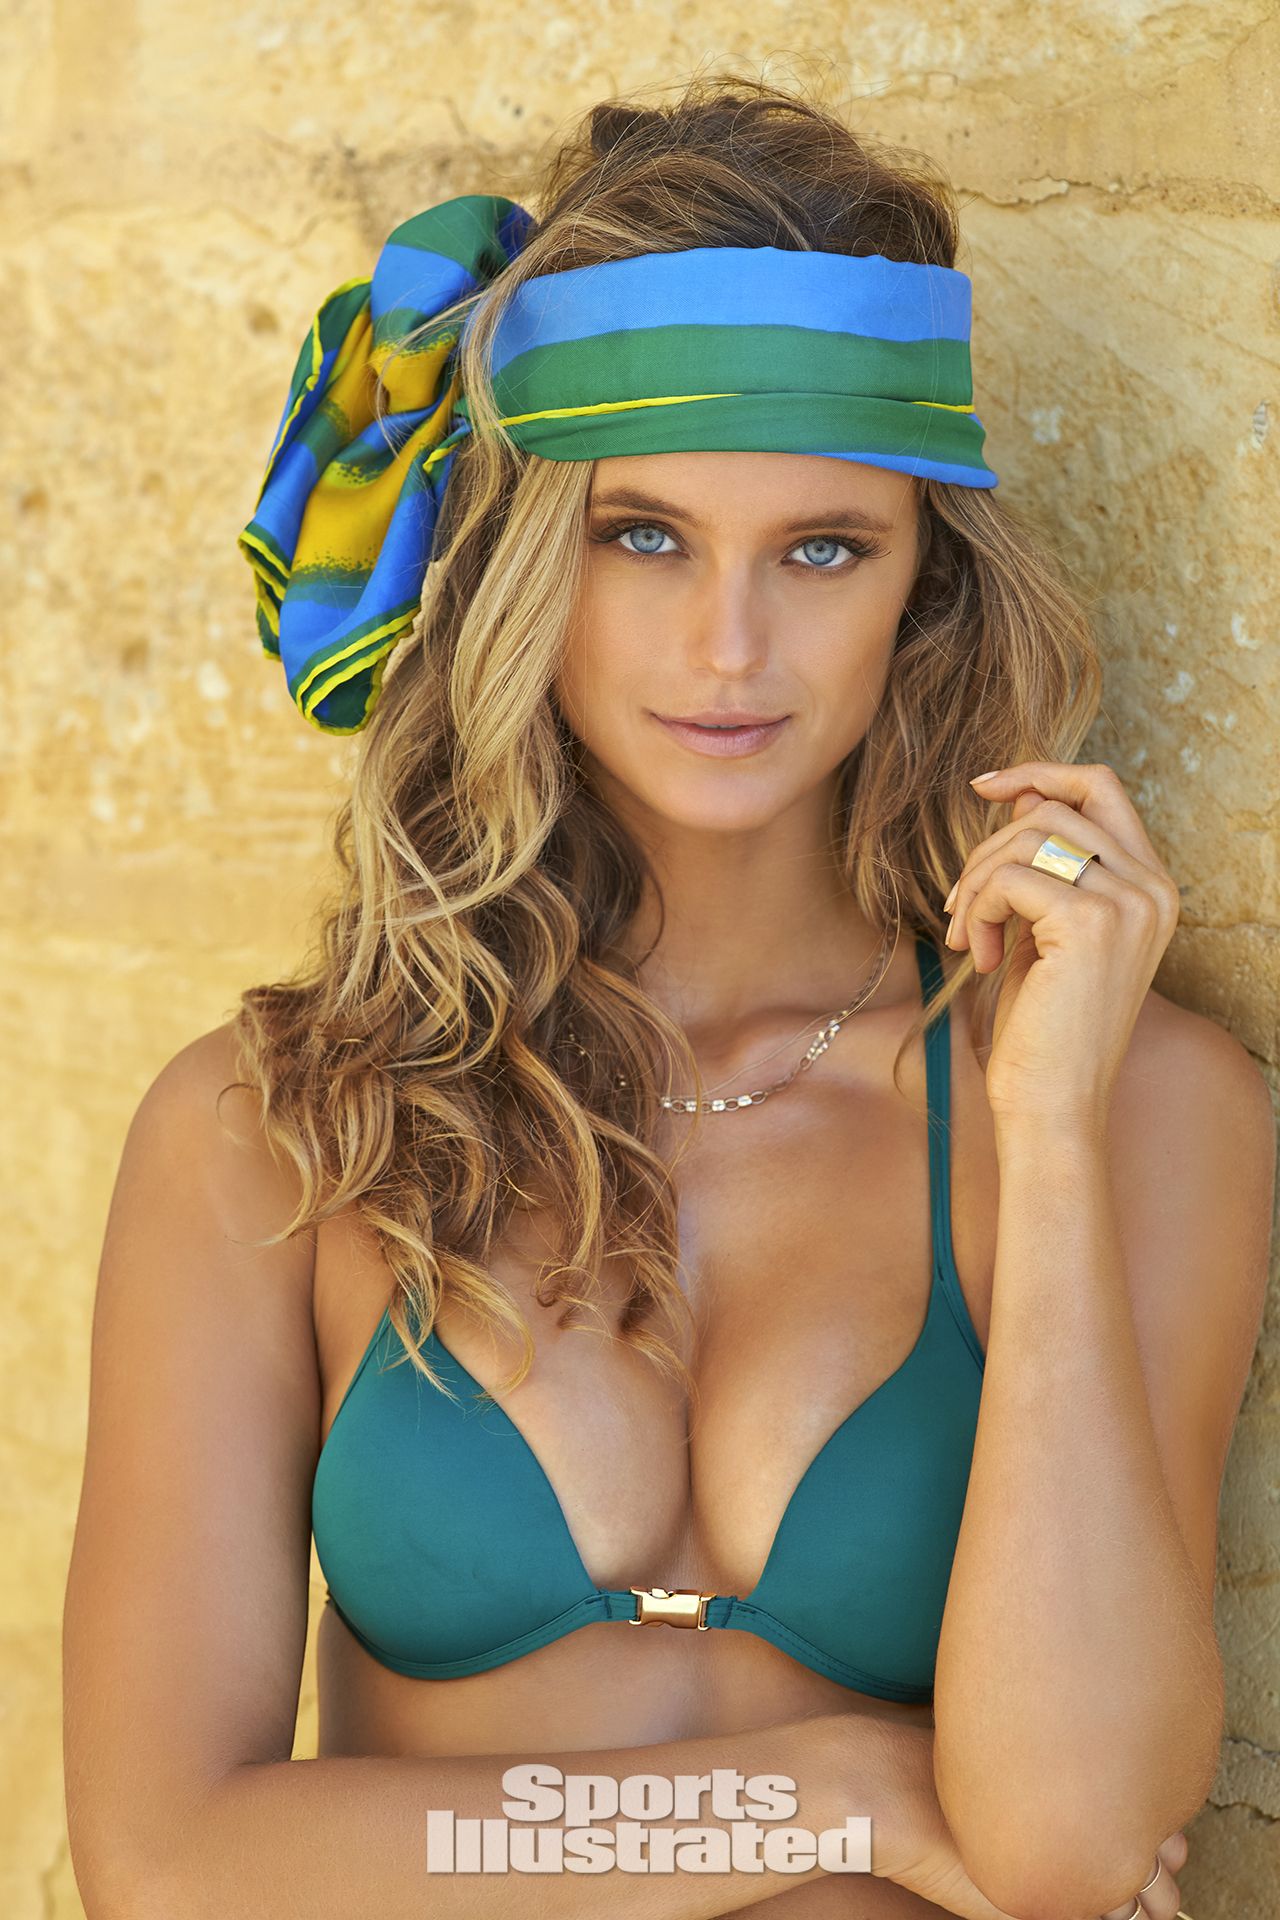 Kate Bock was photographed by Ben Watts in Malta. Swimsuit by Dicker Swimwear.